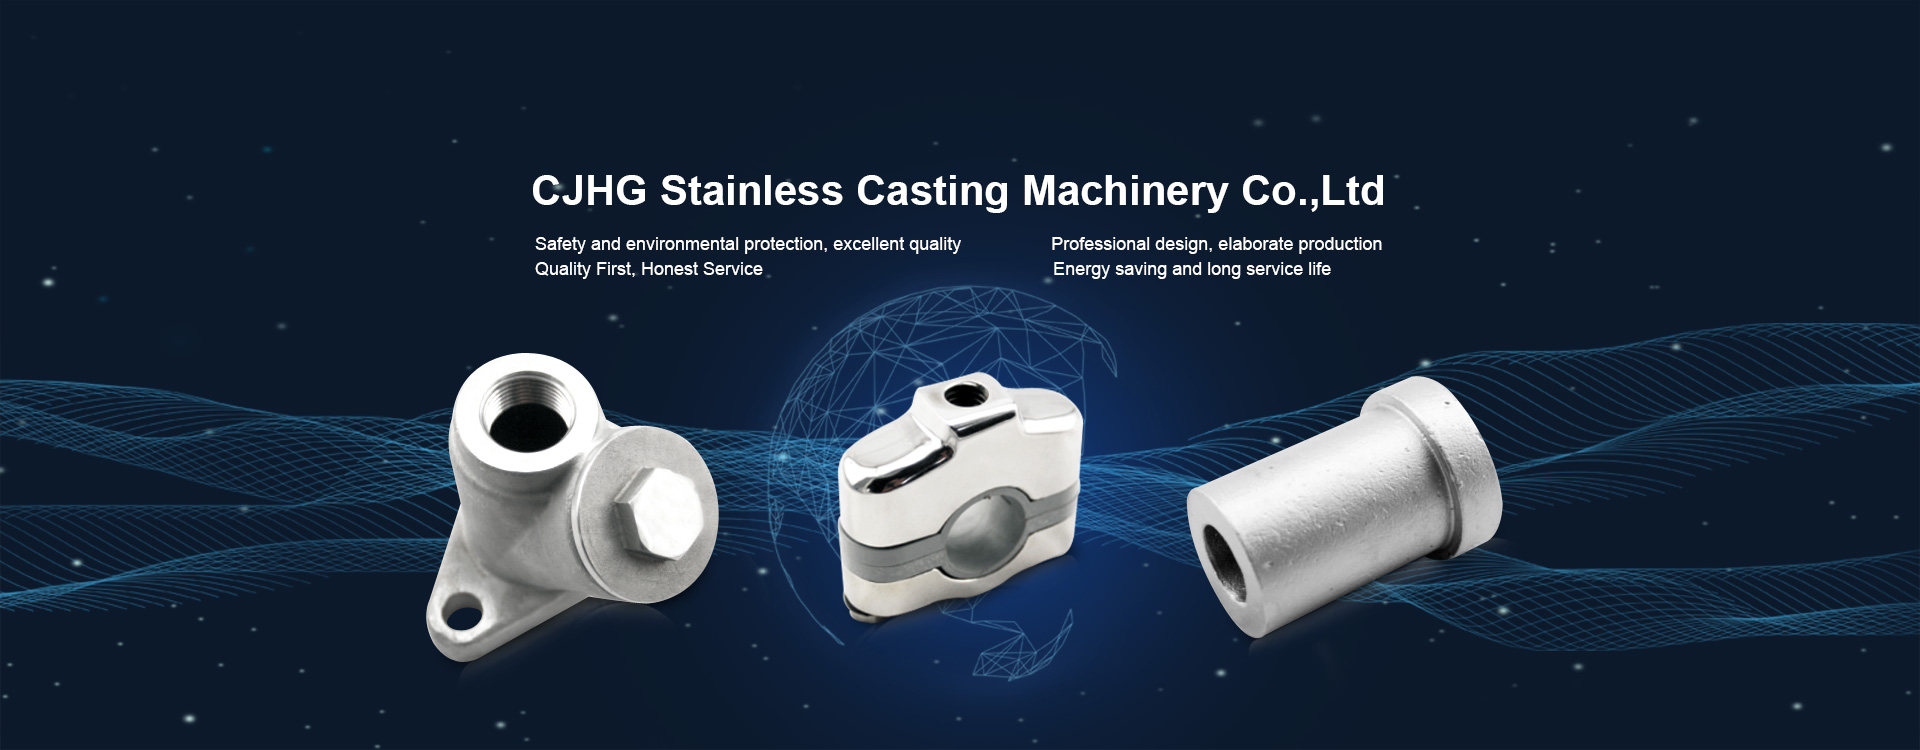 CJHG Stainless Casting Machinery Co.,Ltd